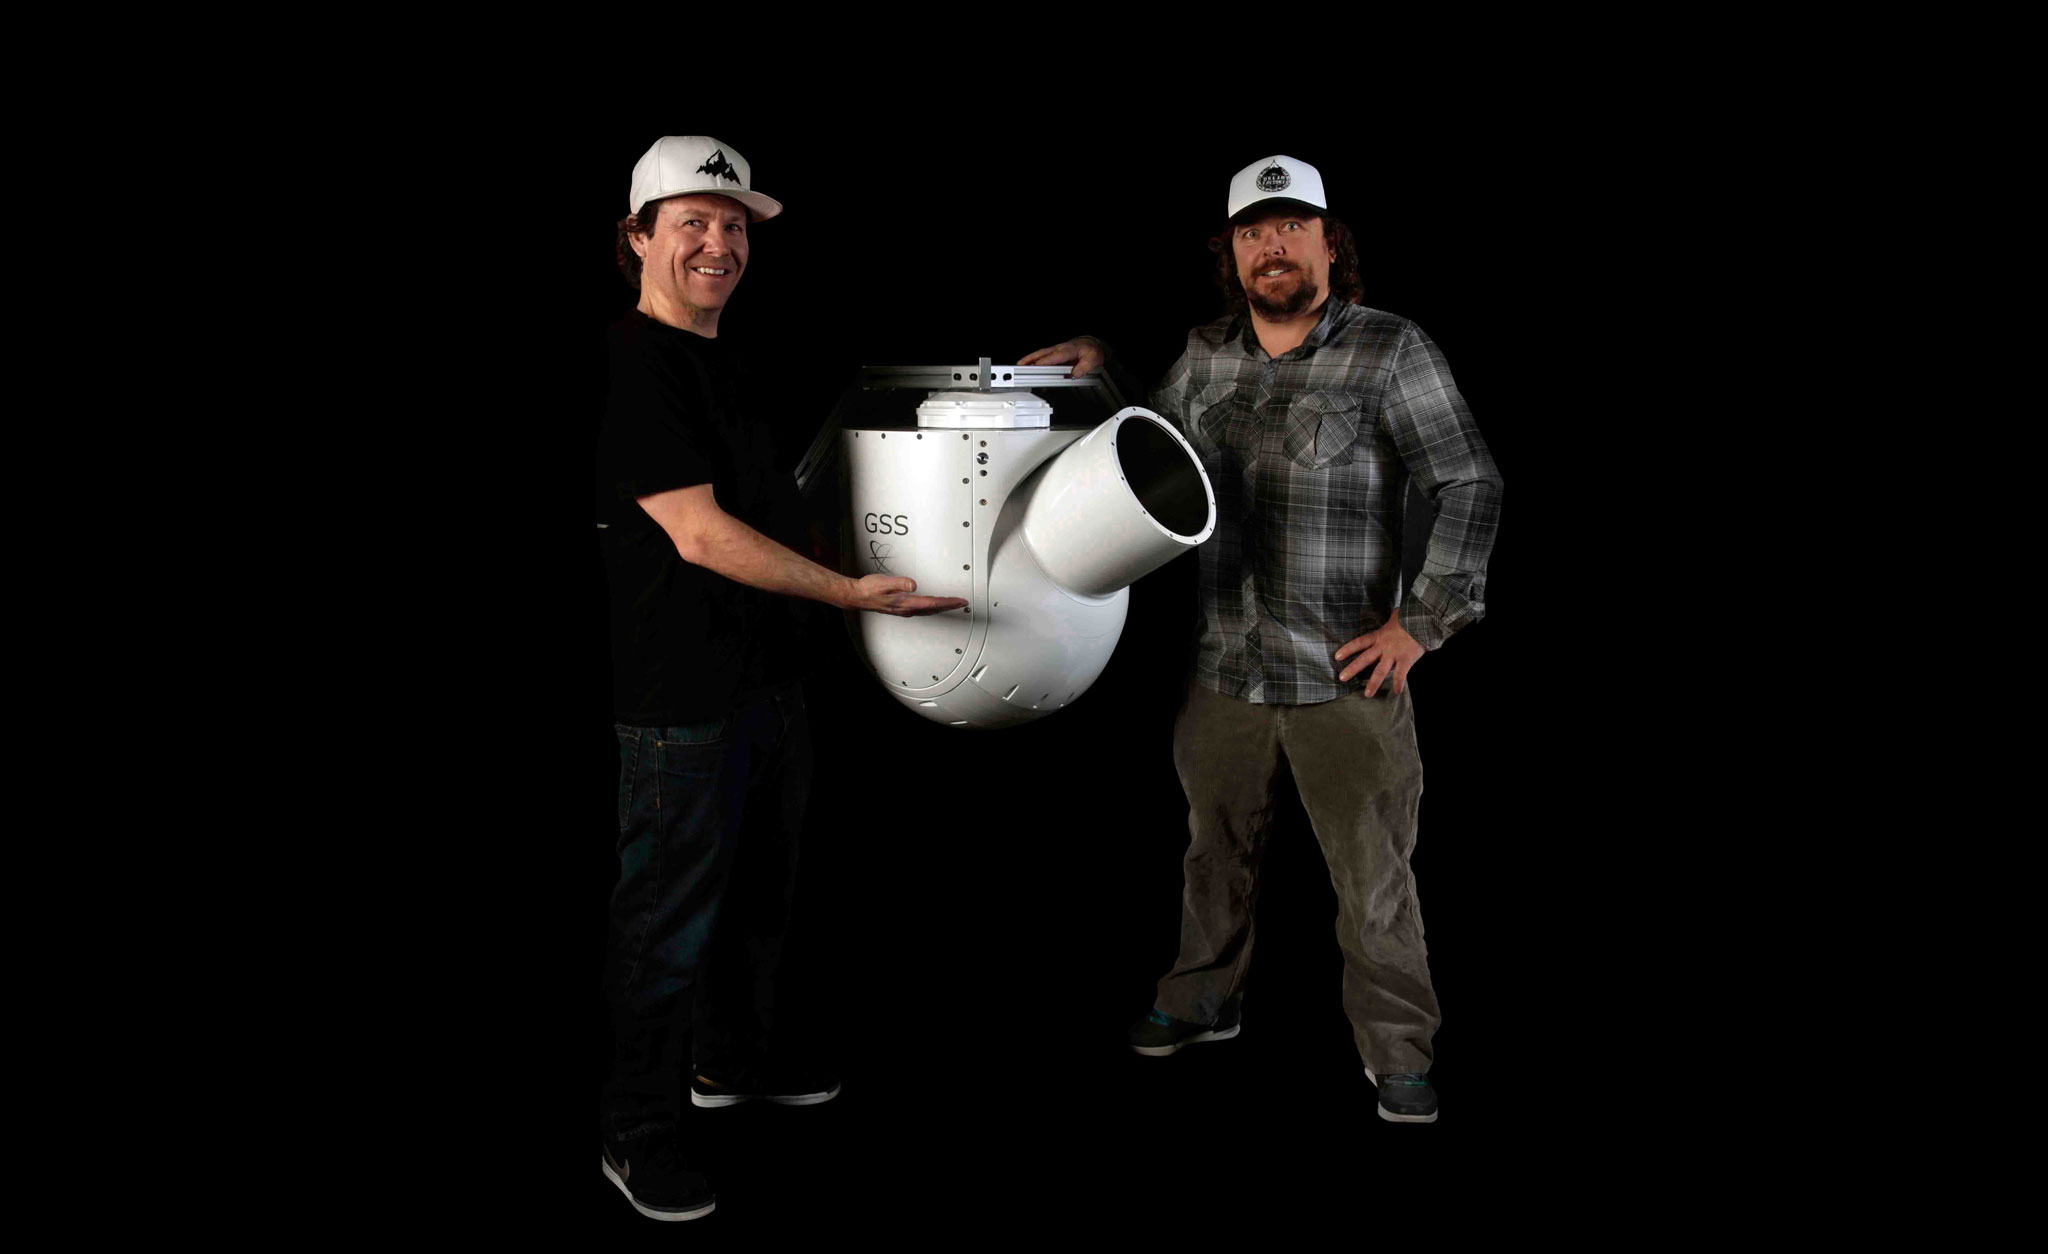 Teton Gravity Research co-founders Todd and Steve Jones with their new Gyro-Stabilized Systems camera platform.